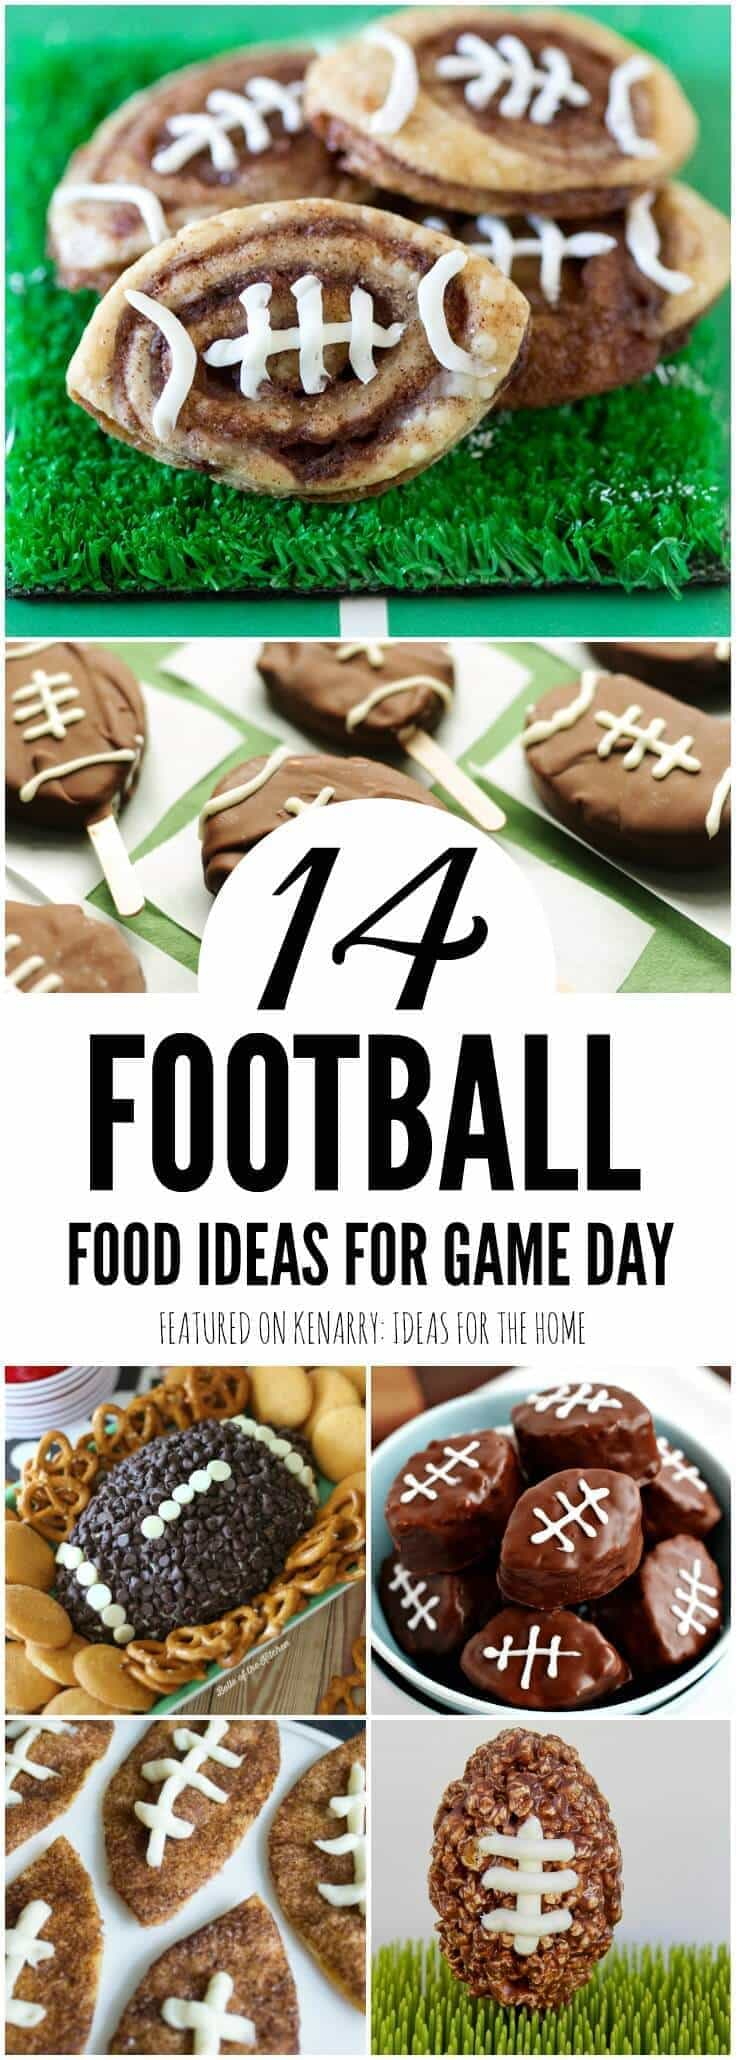 Football Shaped Food Ideas For Tailgating And Game Day